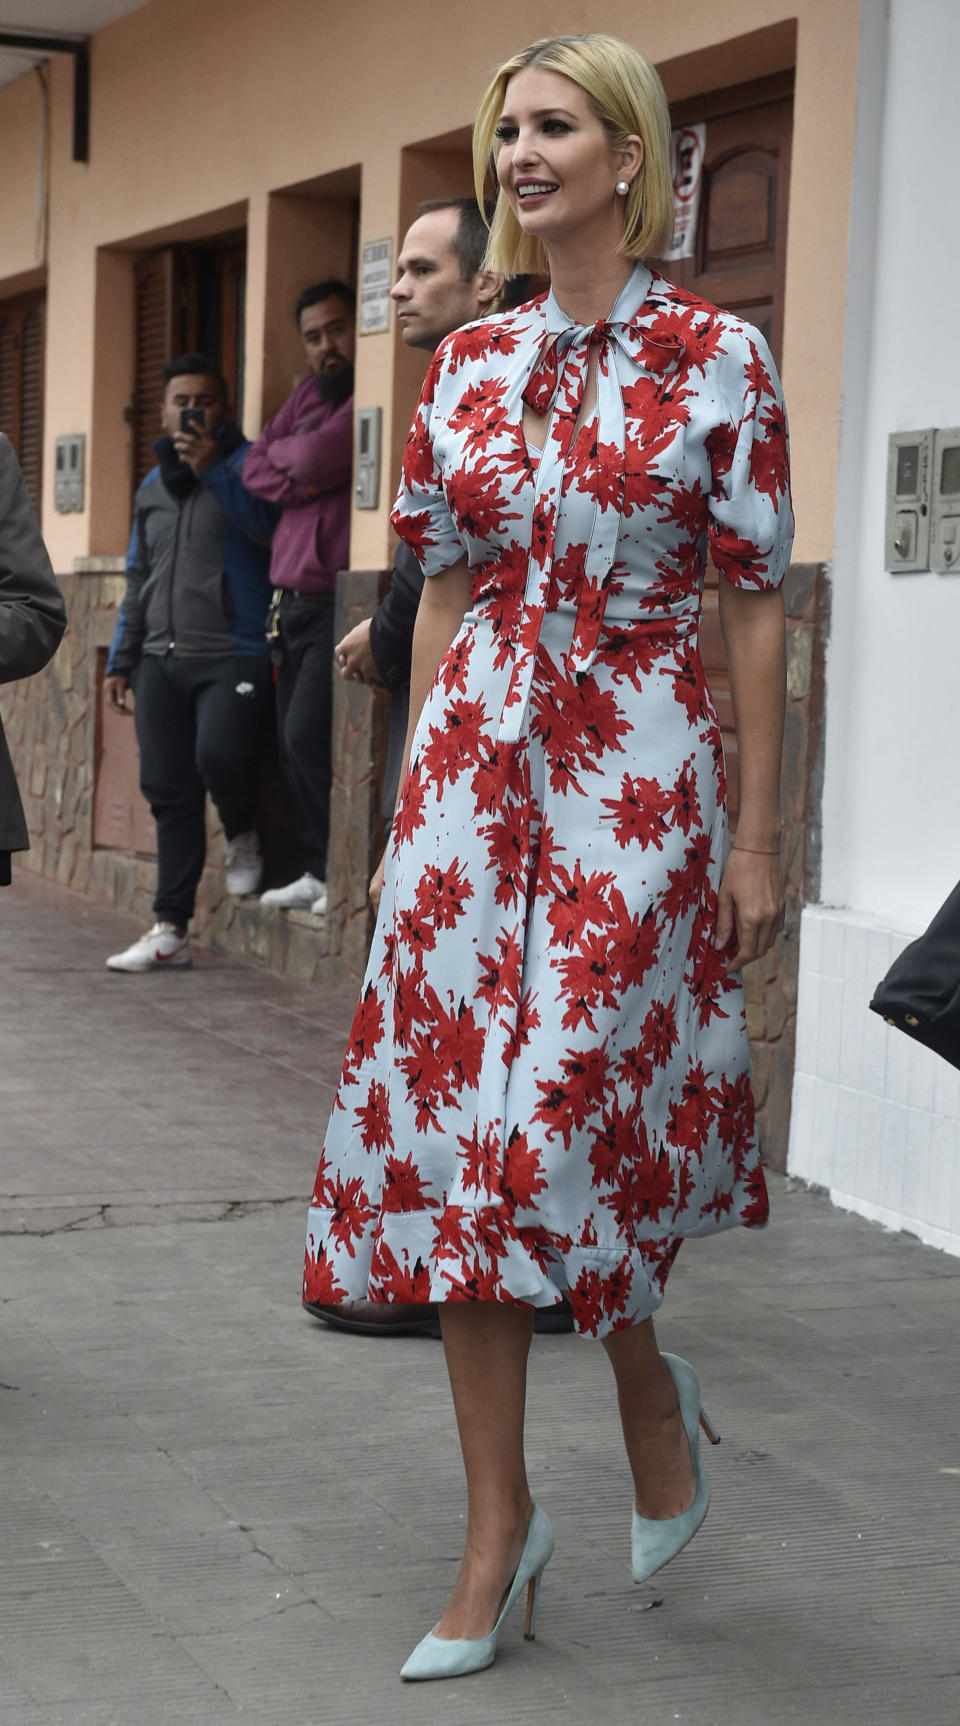 Ivanka Trump, President Donald Trump's daughter and White House adviser, leaves Graciela Cristina Alcocer's bakery during her visit to Jujuy, Argentina, Thursday, Sept. 5, 2019. Ivanka Trump is on the second stop of her South America trip aimed at promoting women's empowerment. (AP Photo/Gustavo Garello)